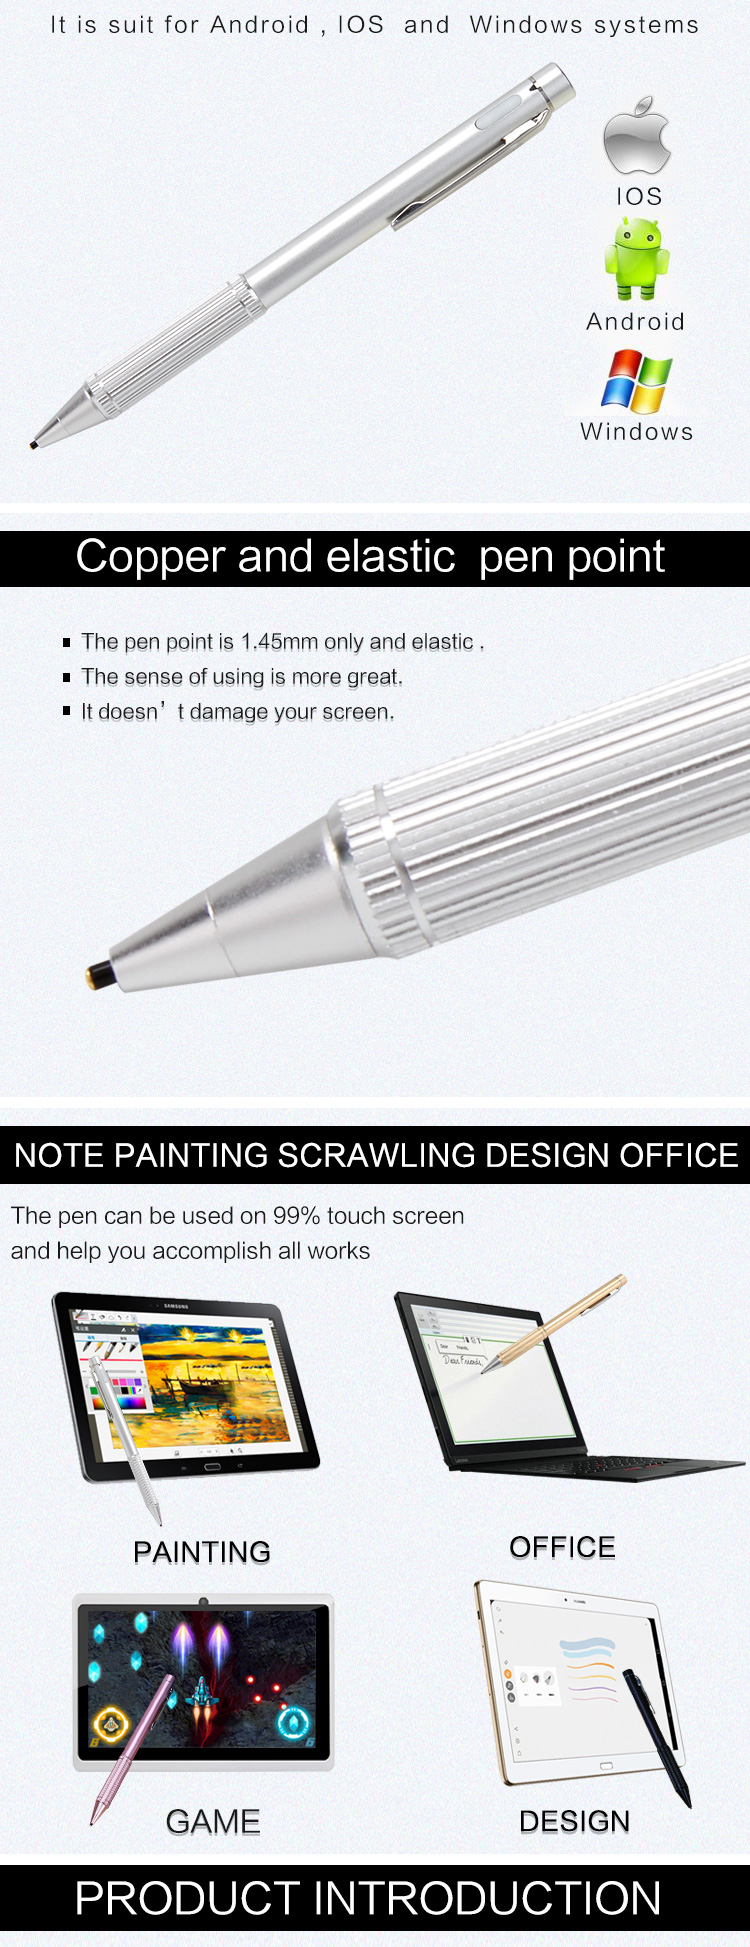 1.45mm Unique Stylus Pen Touch Screen APPLE Pencil Compatible for Drawing & Handwriting for Smartphones & Tablets Fine Point